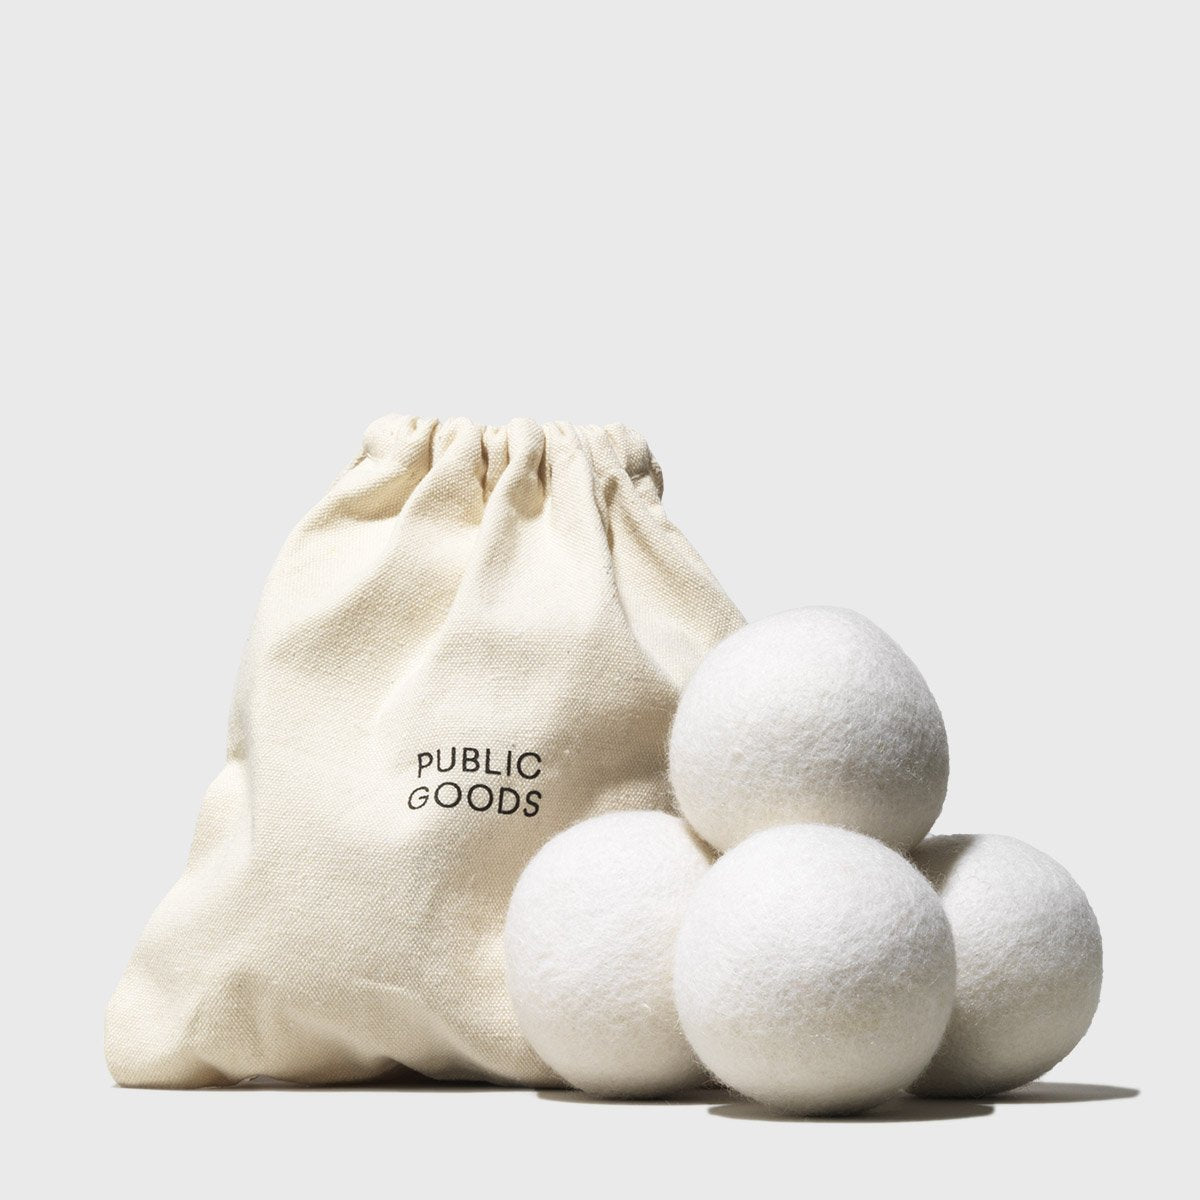 Wool Dryer Balls 4 ct (Case of 75)